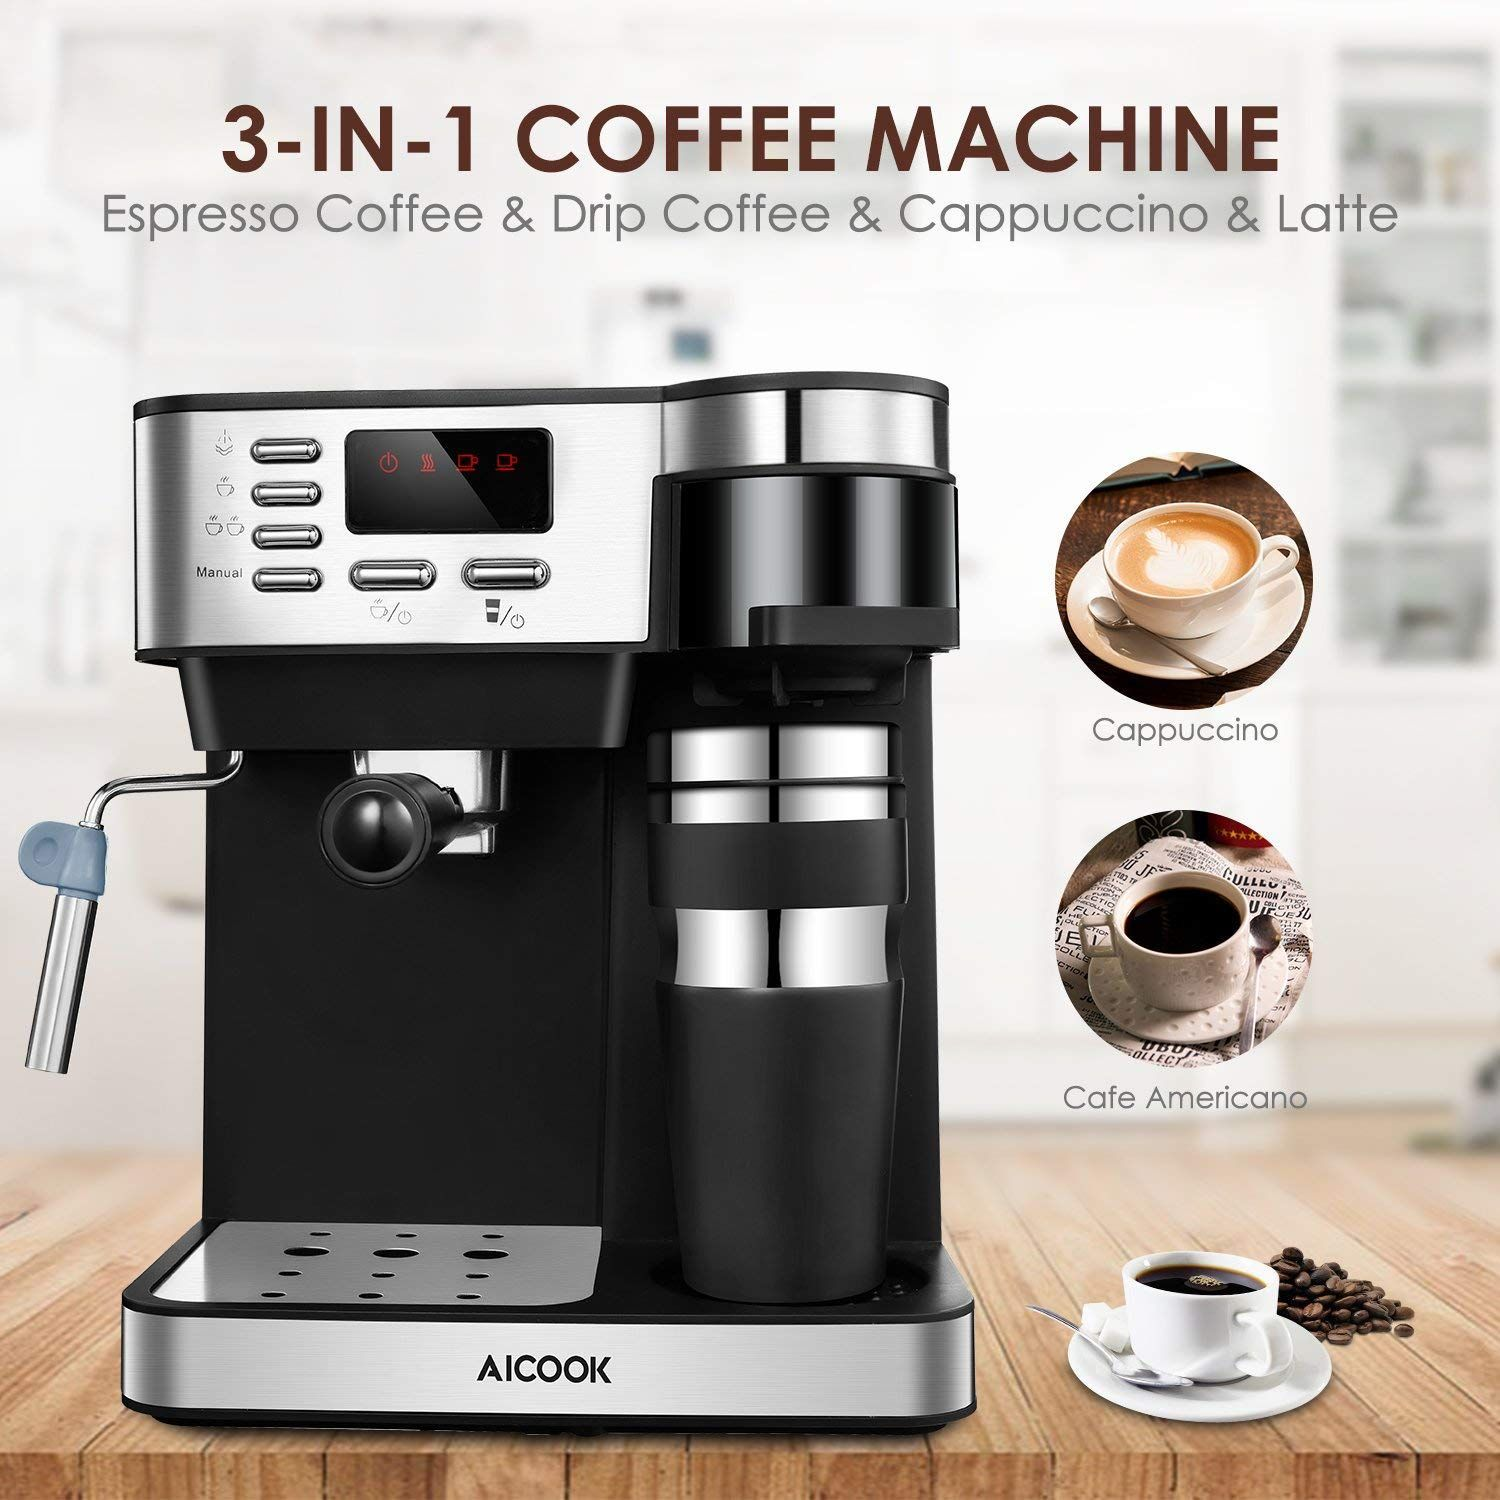 Aicook 3in1 Espresso & Coffee Machine Only 99.99